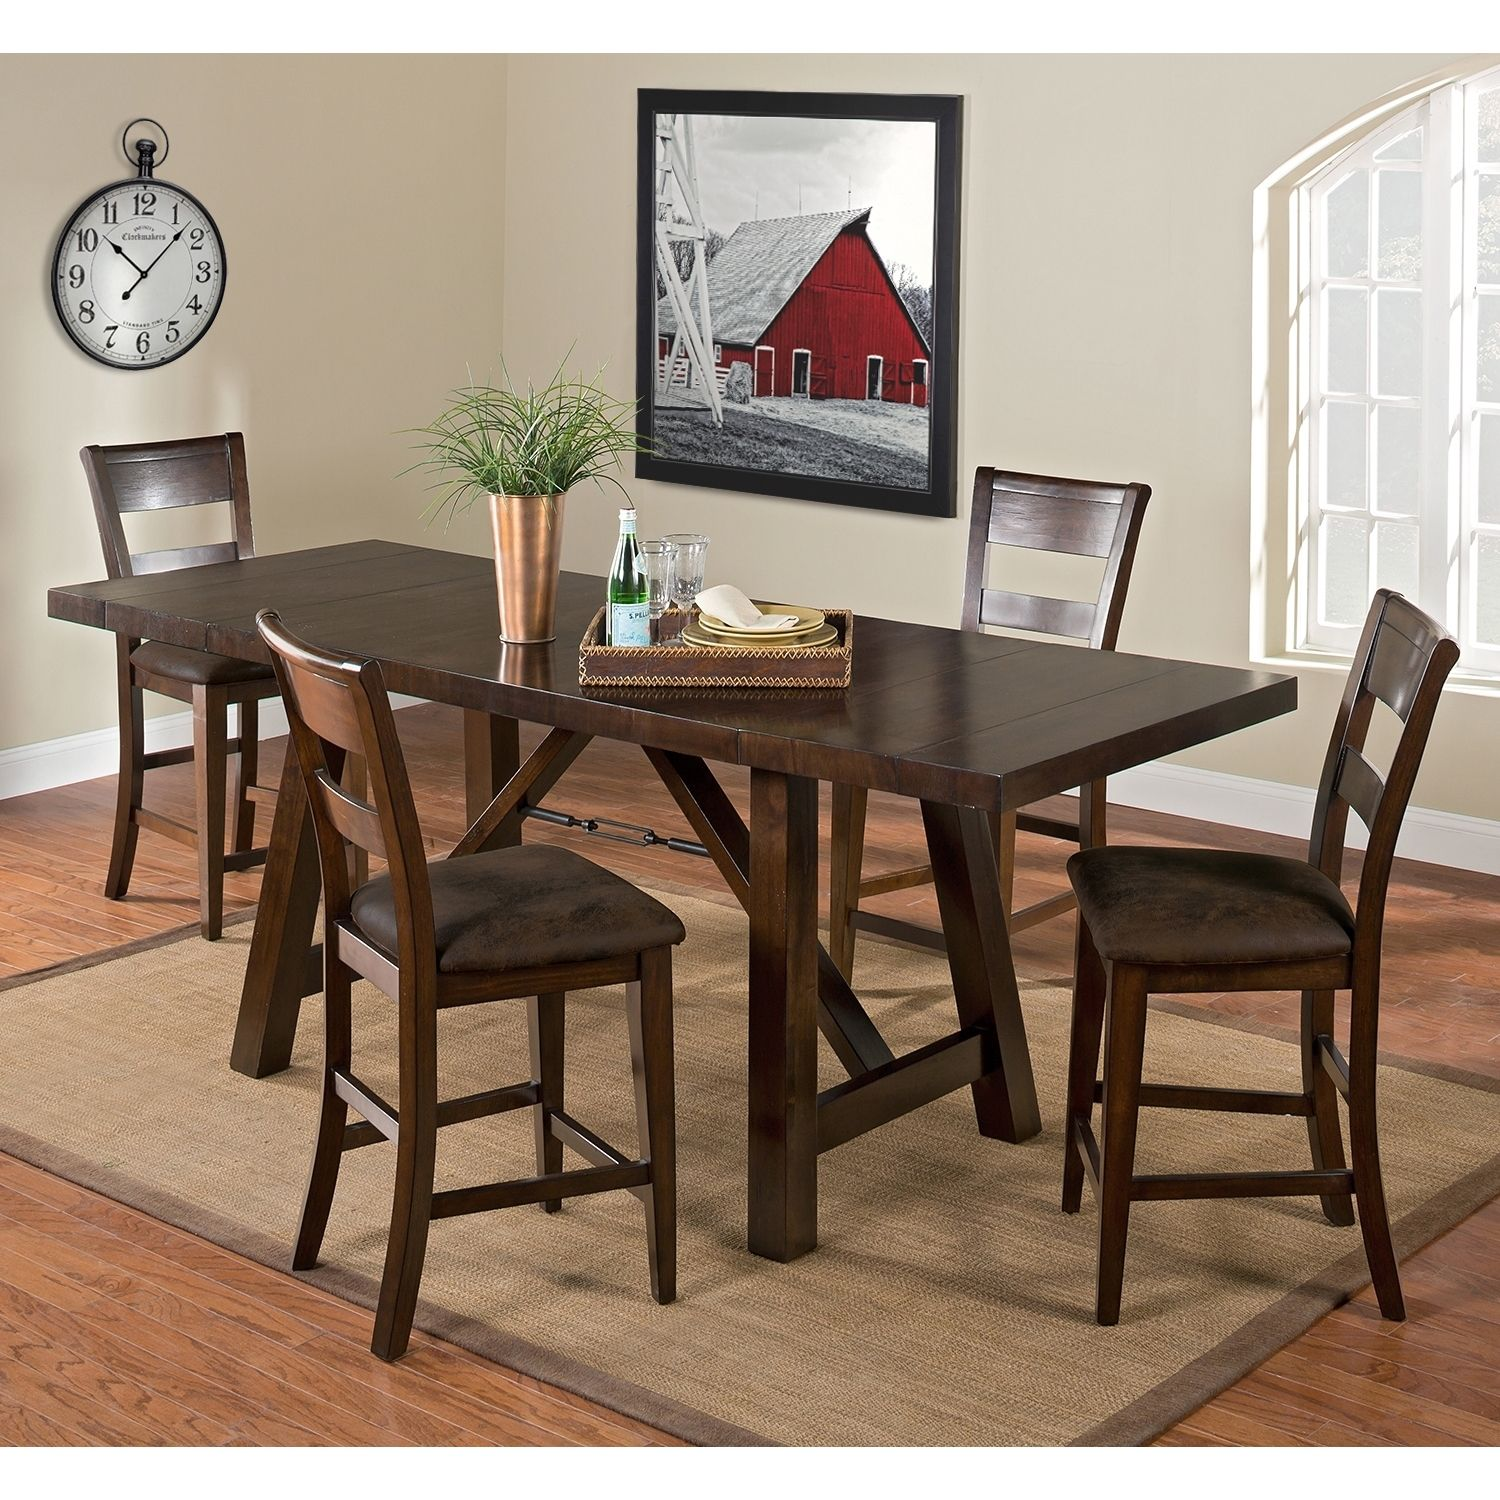 Everett Counter Height Table Value City Furniture 340 Table 110 Per Chair 780 5pc 1000 7pc Dining Room Furniture Furniture Dinette Furniture